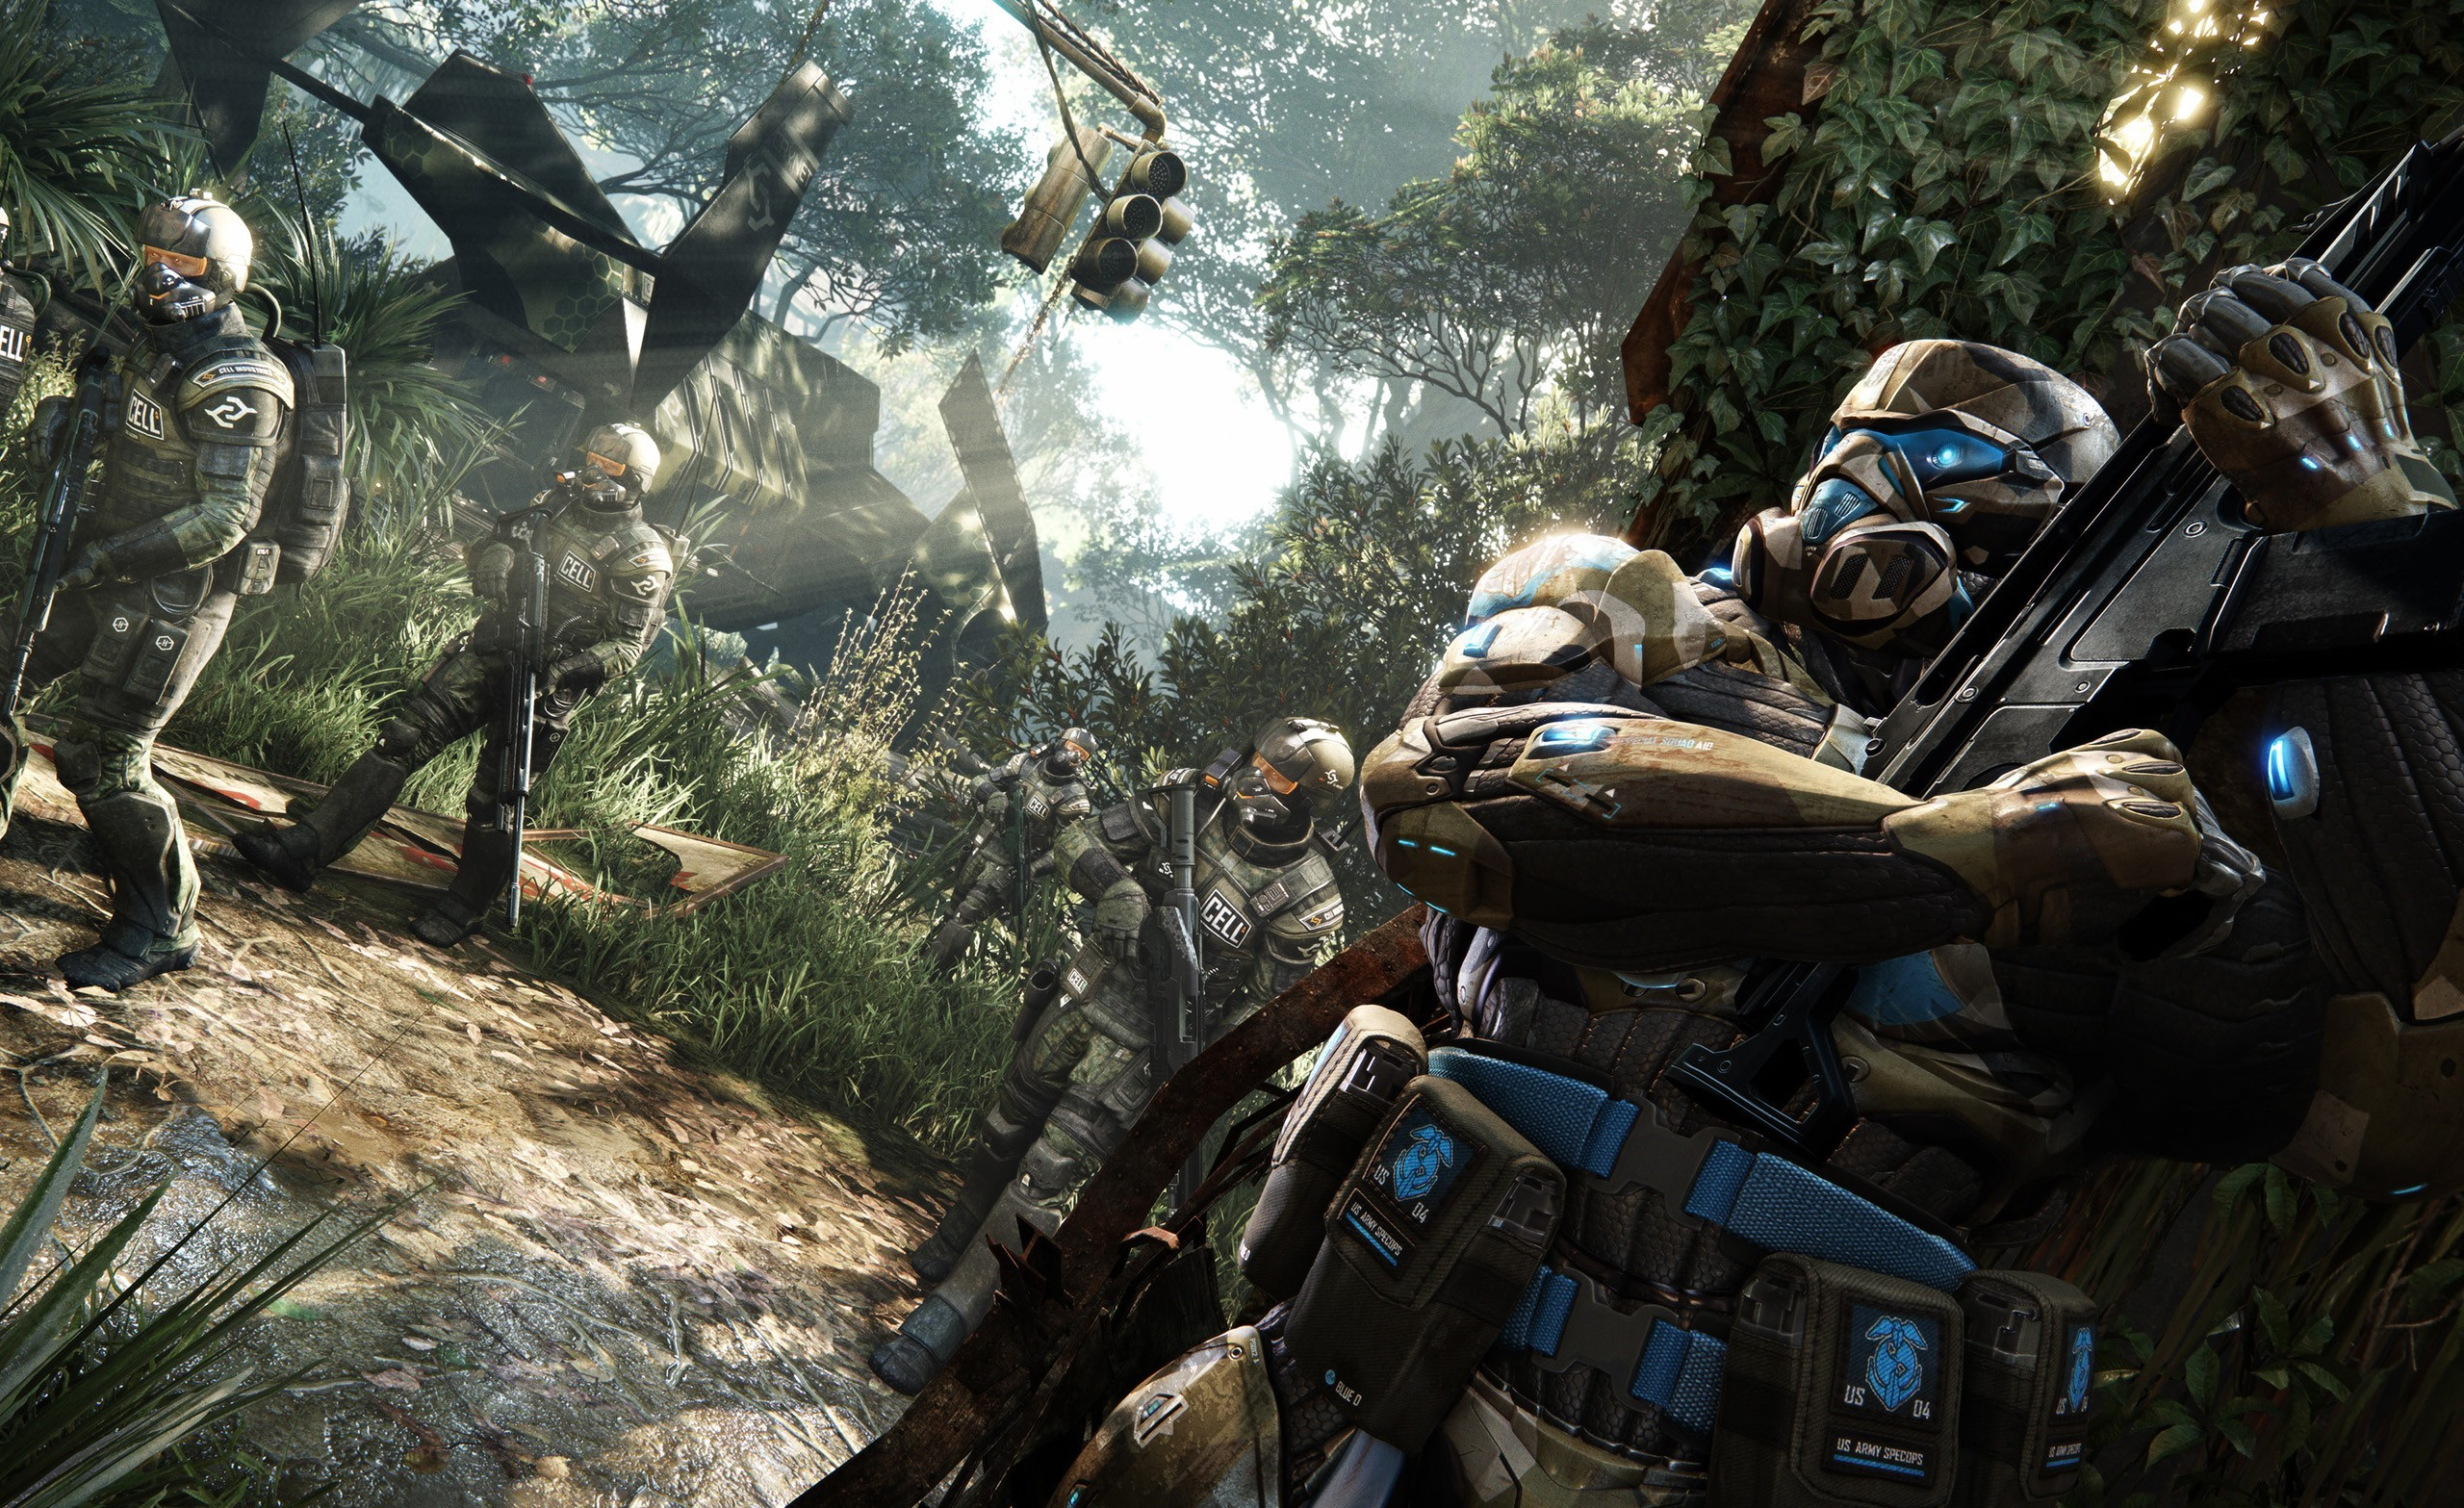 Crysis 3 Wallpapers, Pictures, Images